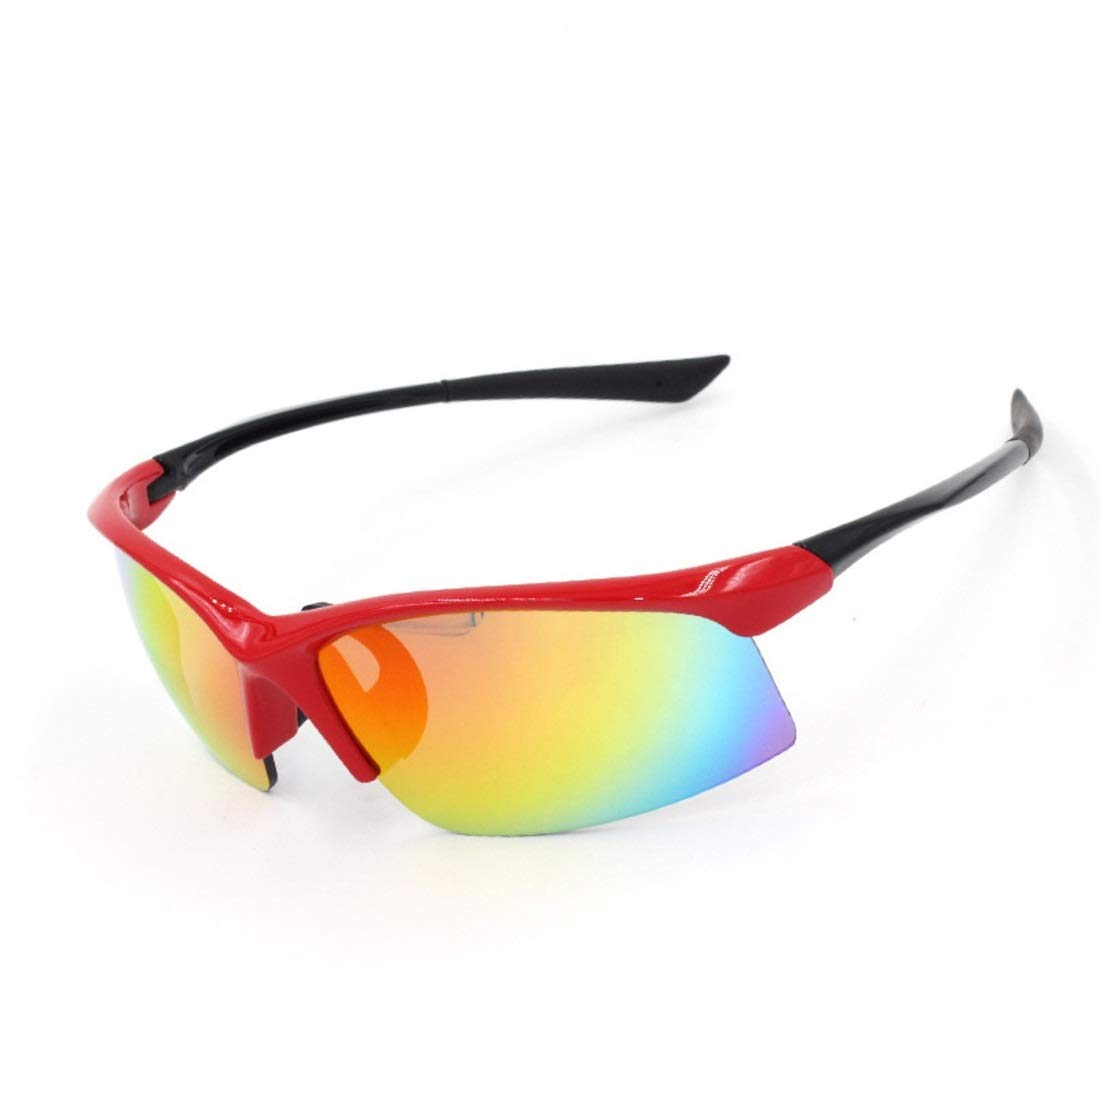 BAOYIT Outdoor Sports UV Protection Mountain Bike Riding Glasses Accessories (Color : Red) by BAOYIT